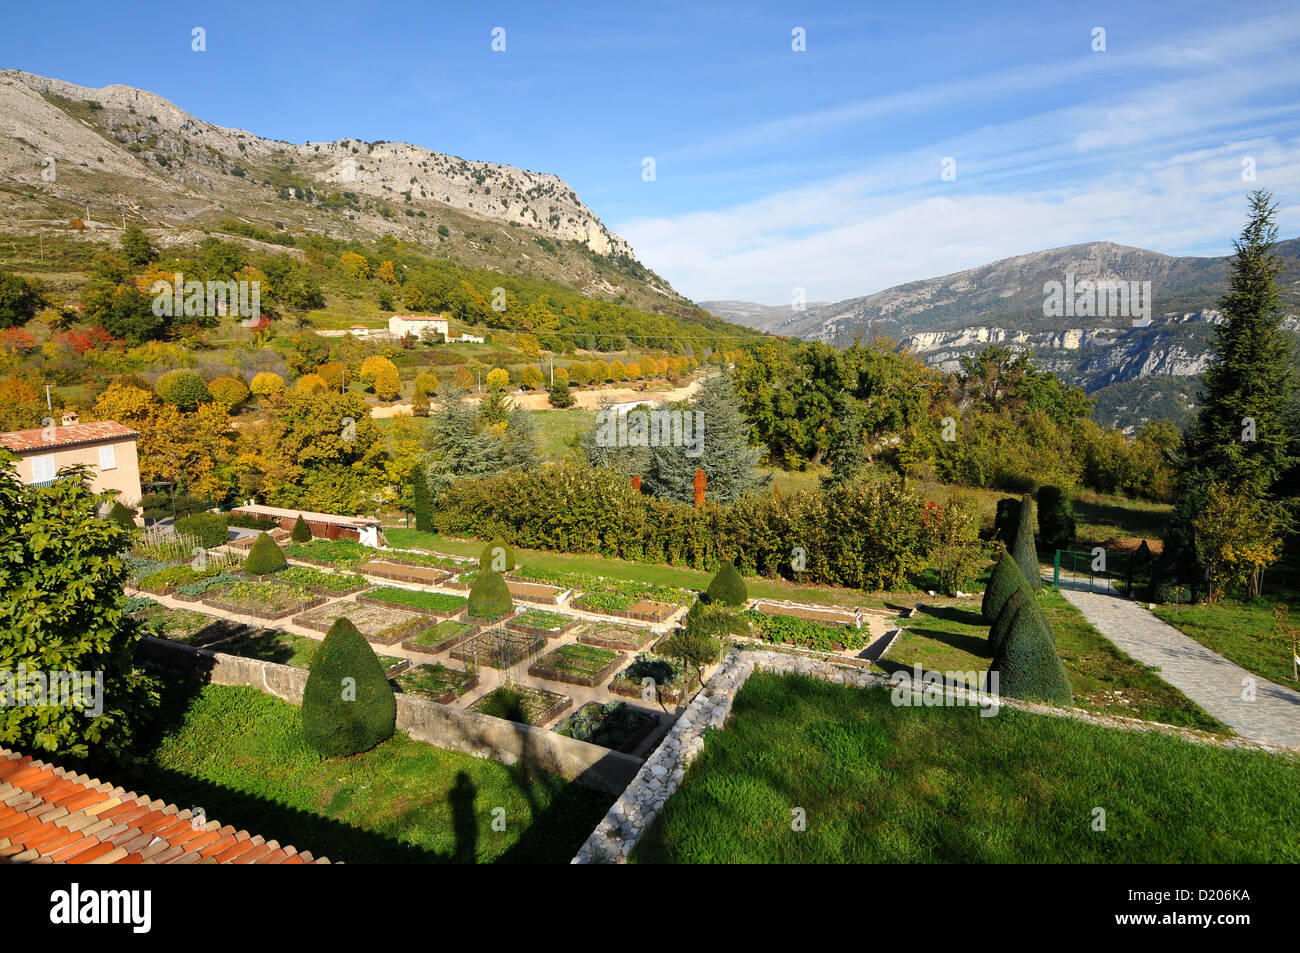 view over idyllic landscape at gorges du loup cote d 39 azur south stock photo royalty free. Black Bedroom Furniture Sets. Home Design Ideas